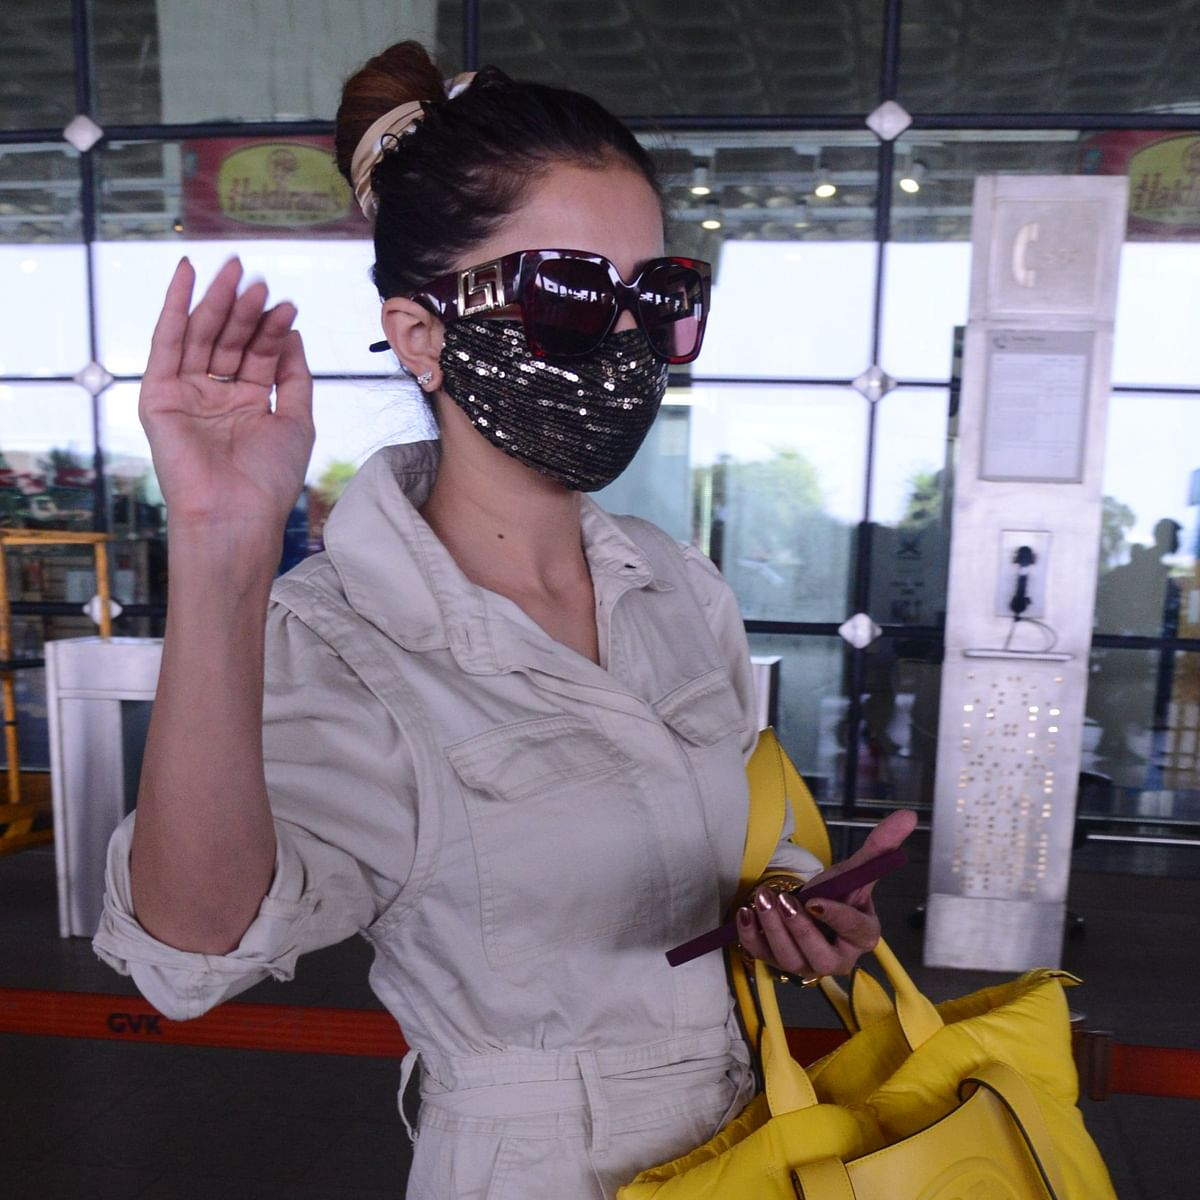 'Attitude dekho': Netizens slam 'Bigg Boss 14' winner Rubina Dilaik for  'arrogance' at airport - watch video